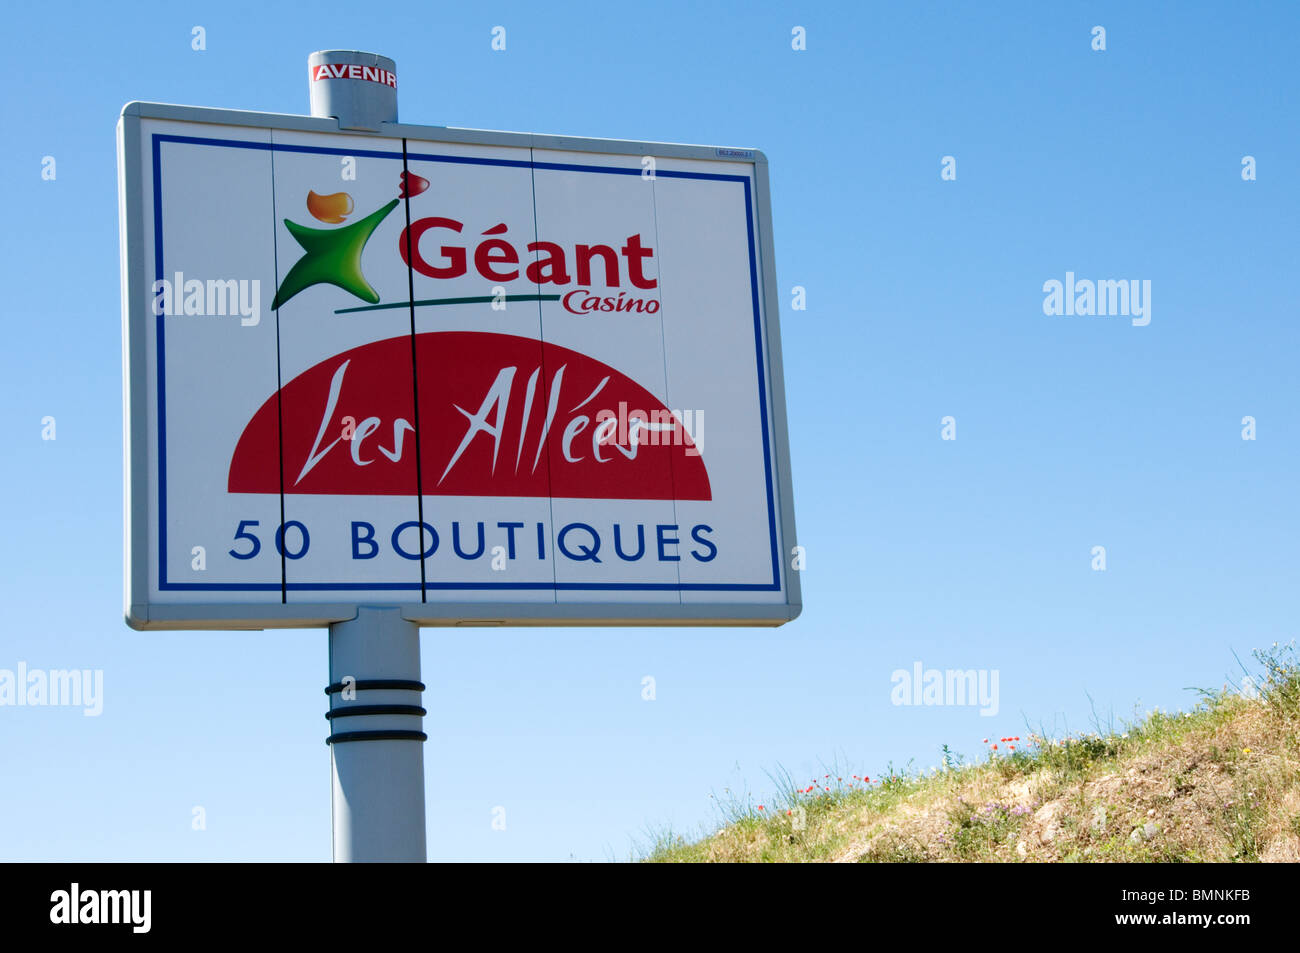 sign for geant casino hypermarket ouside beziers france stock photo royalty free image. Black Bedroom Furniture Sets. Home Design Ideas